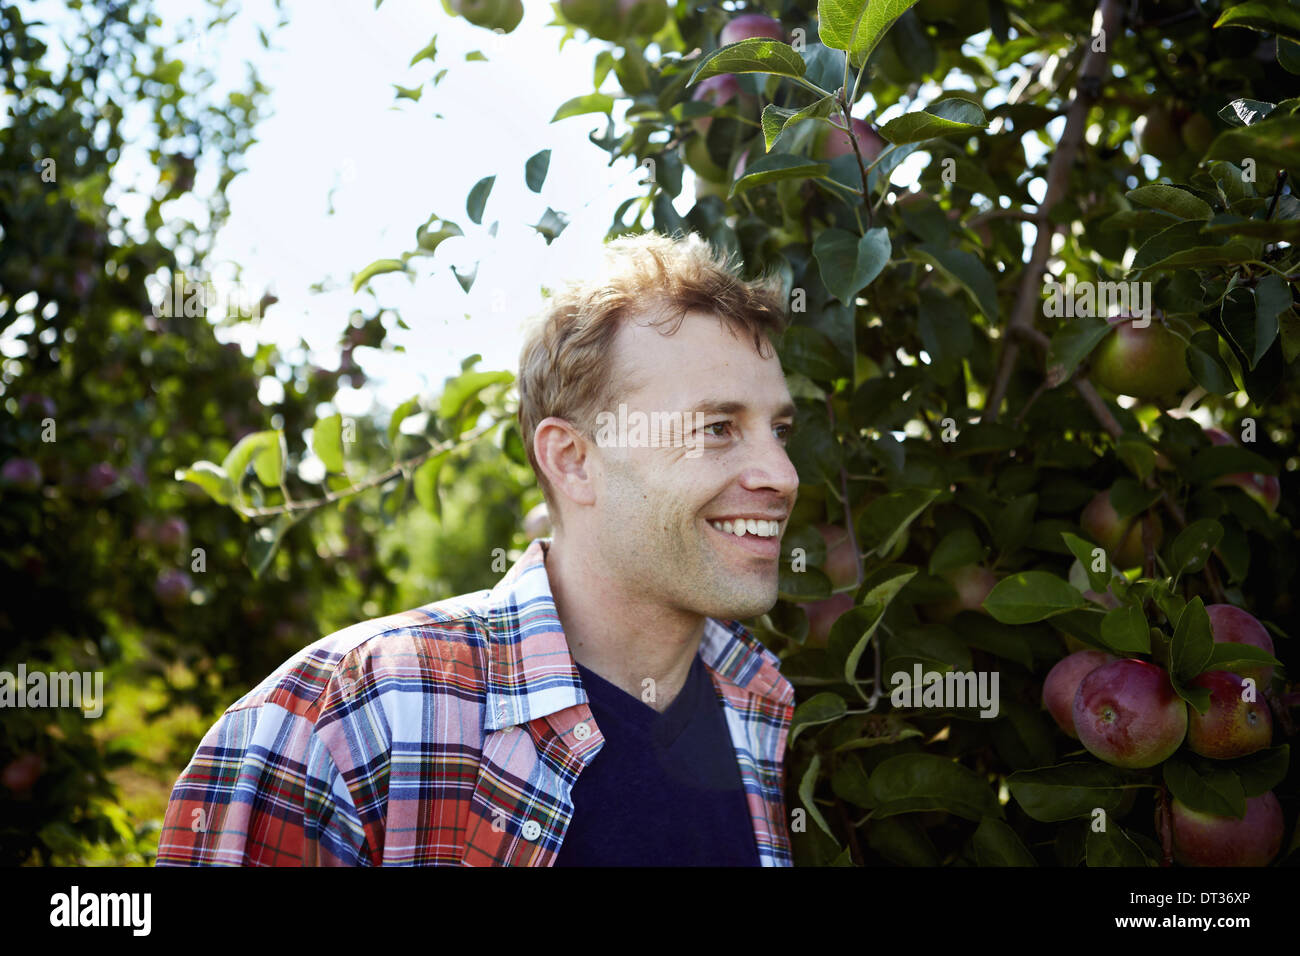 A man in a plaid shirt in an apple tree orchard - Stock Image